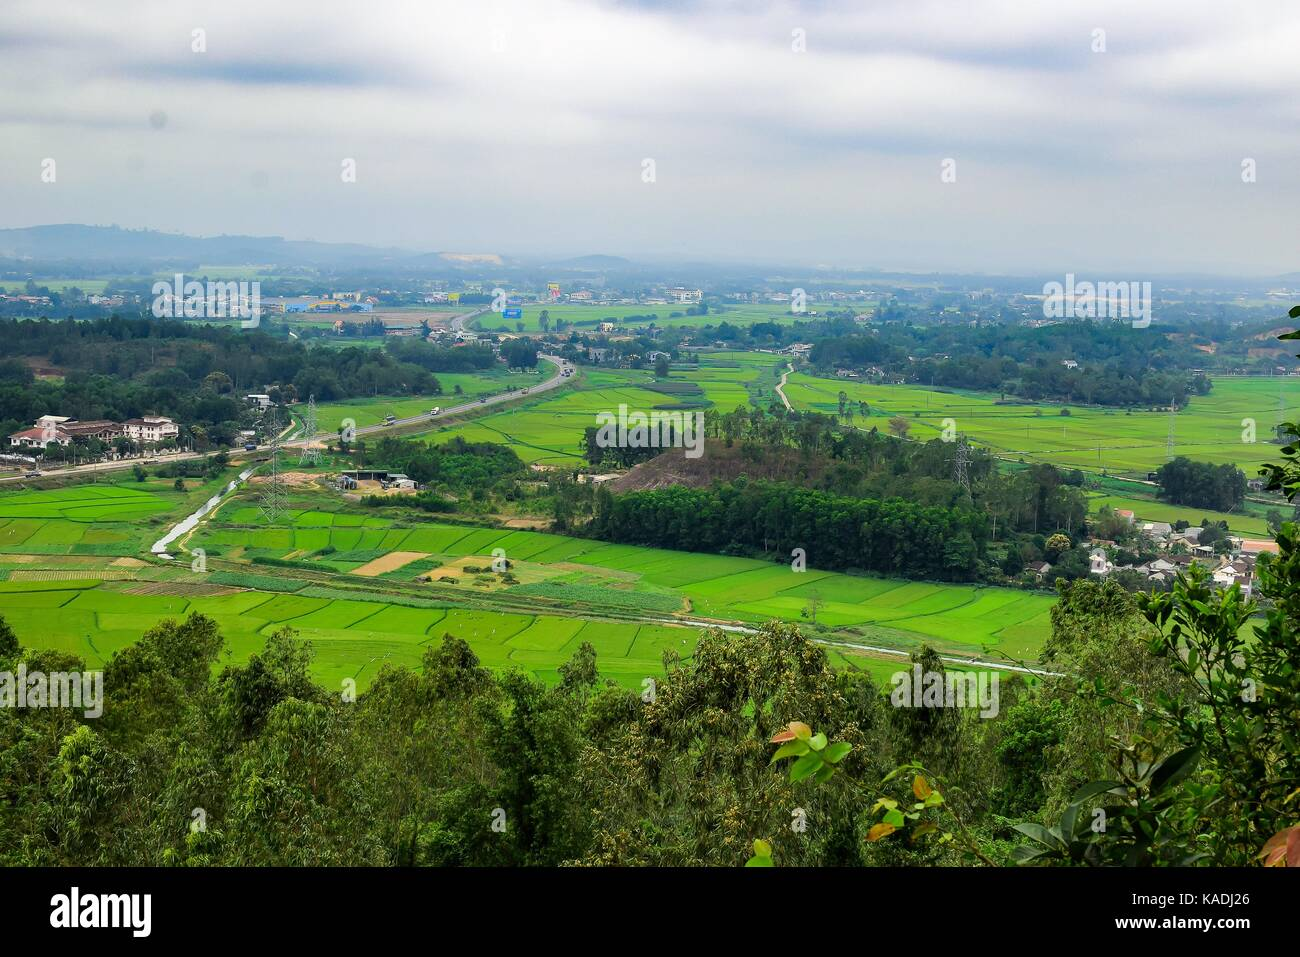 Green Terraced Rice Field In Quang Ngai Vietnam Stock Photo Alamy